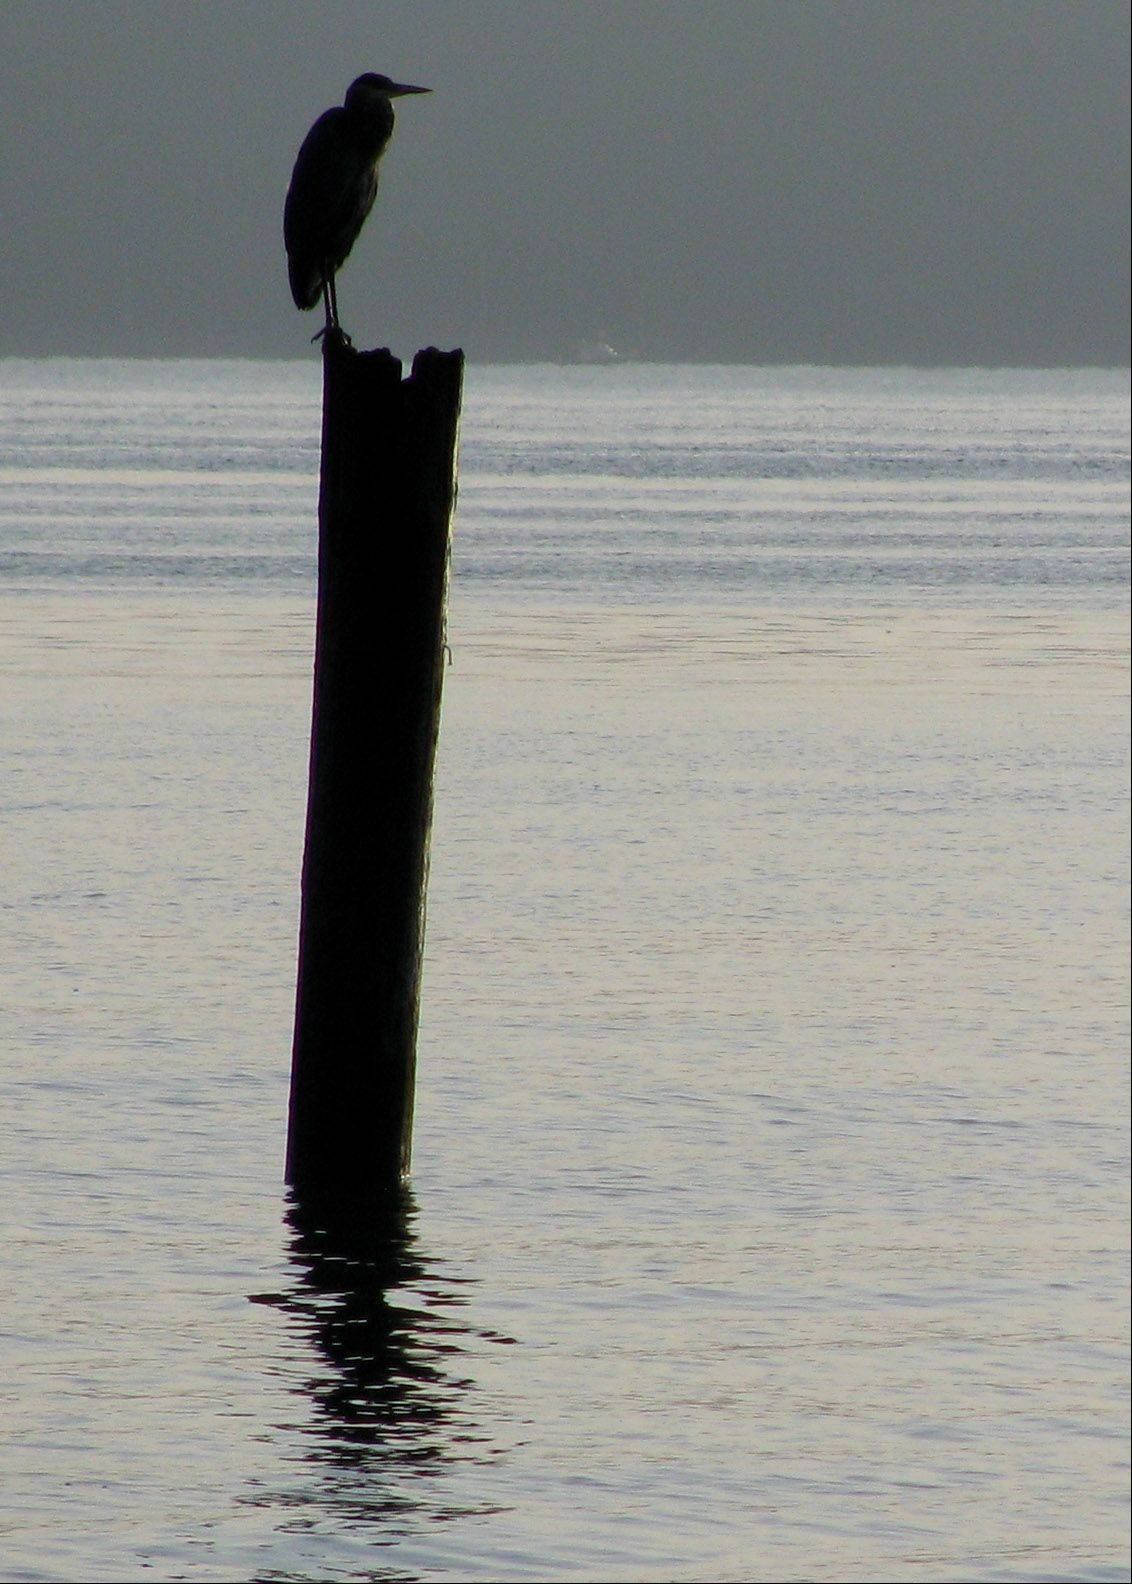 This heron on a piling forms an interesting silhouette in Commencement Bay near Tacoma, Washington.